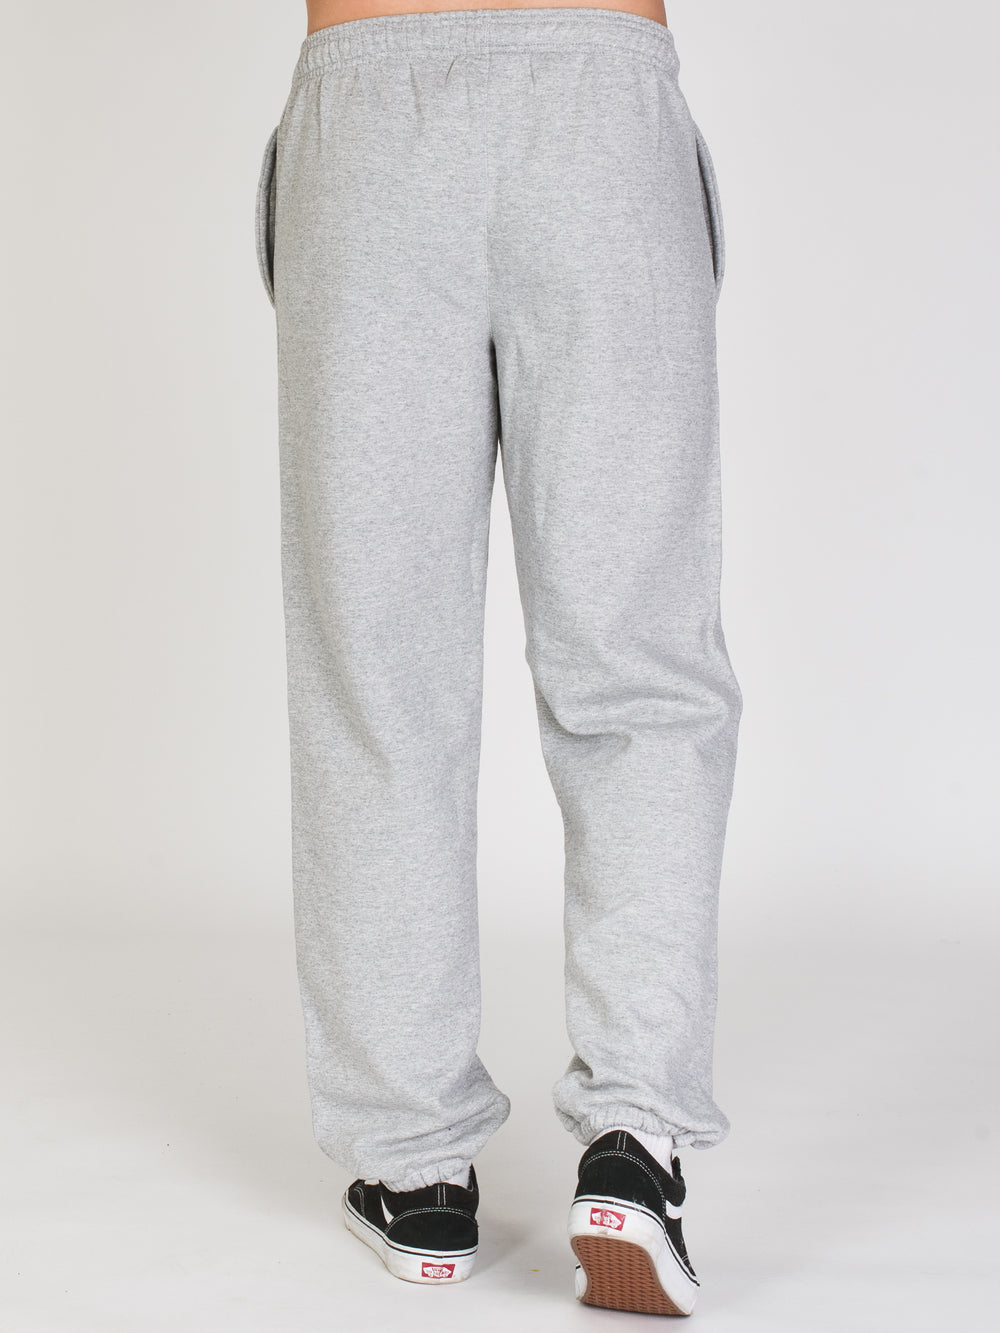 MENS PB FLEECE RELAXED BTM - OX GREY